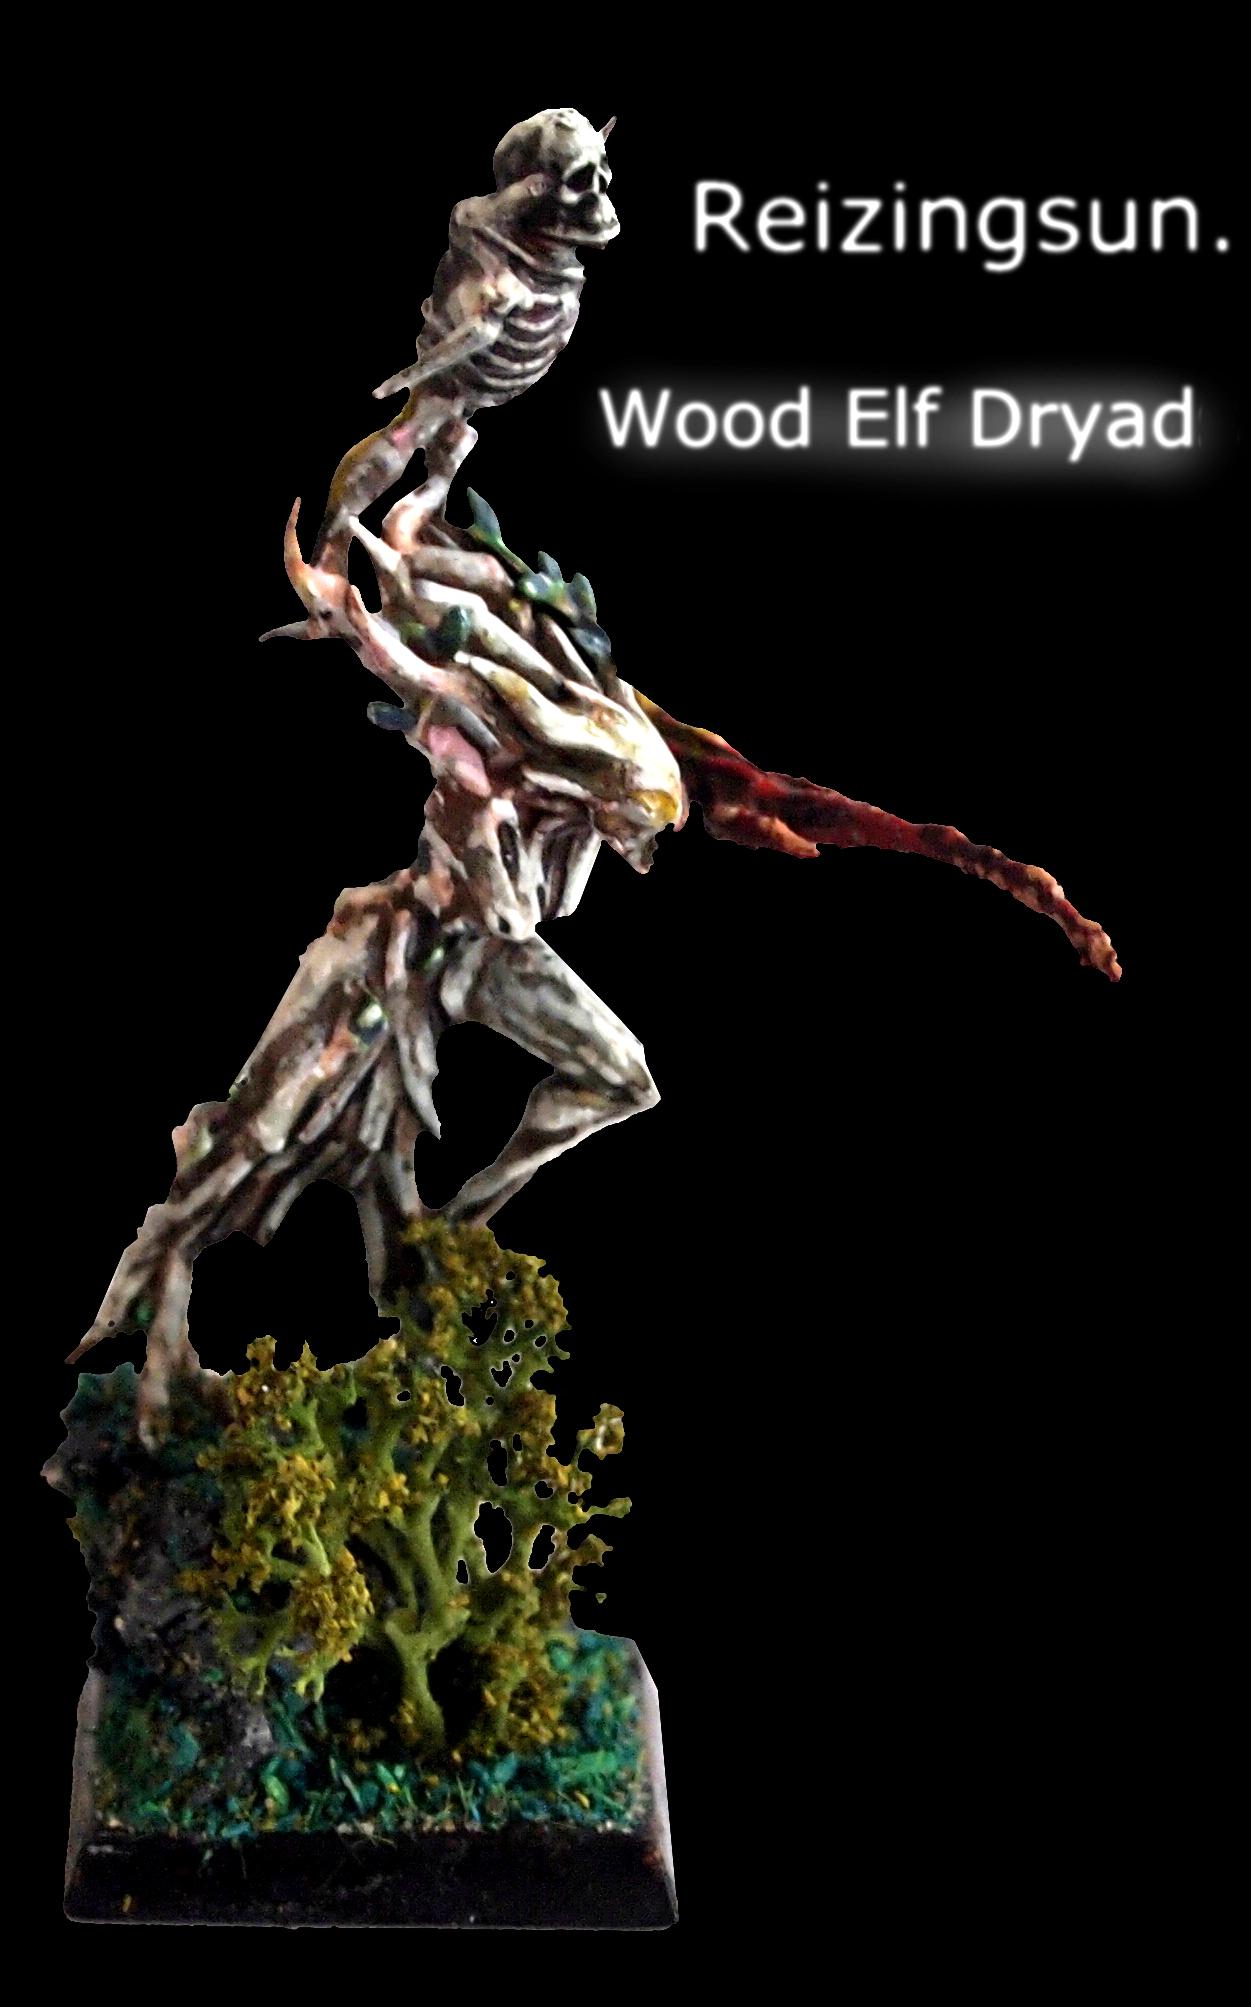 Dryad, Elves, Wood, wood elf dryad